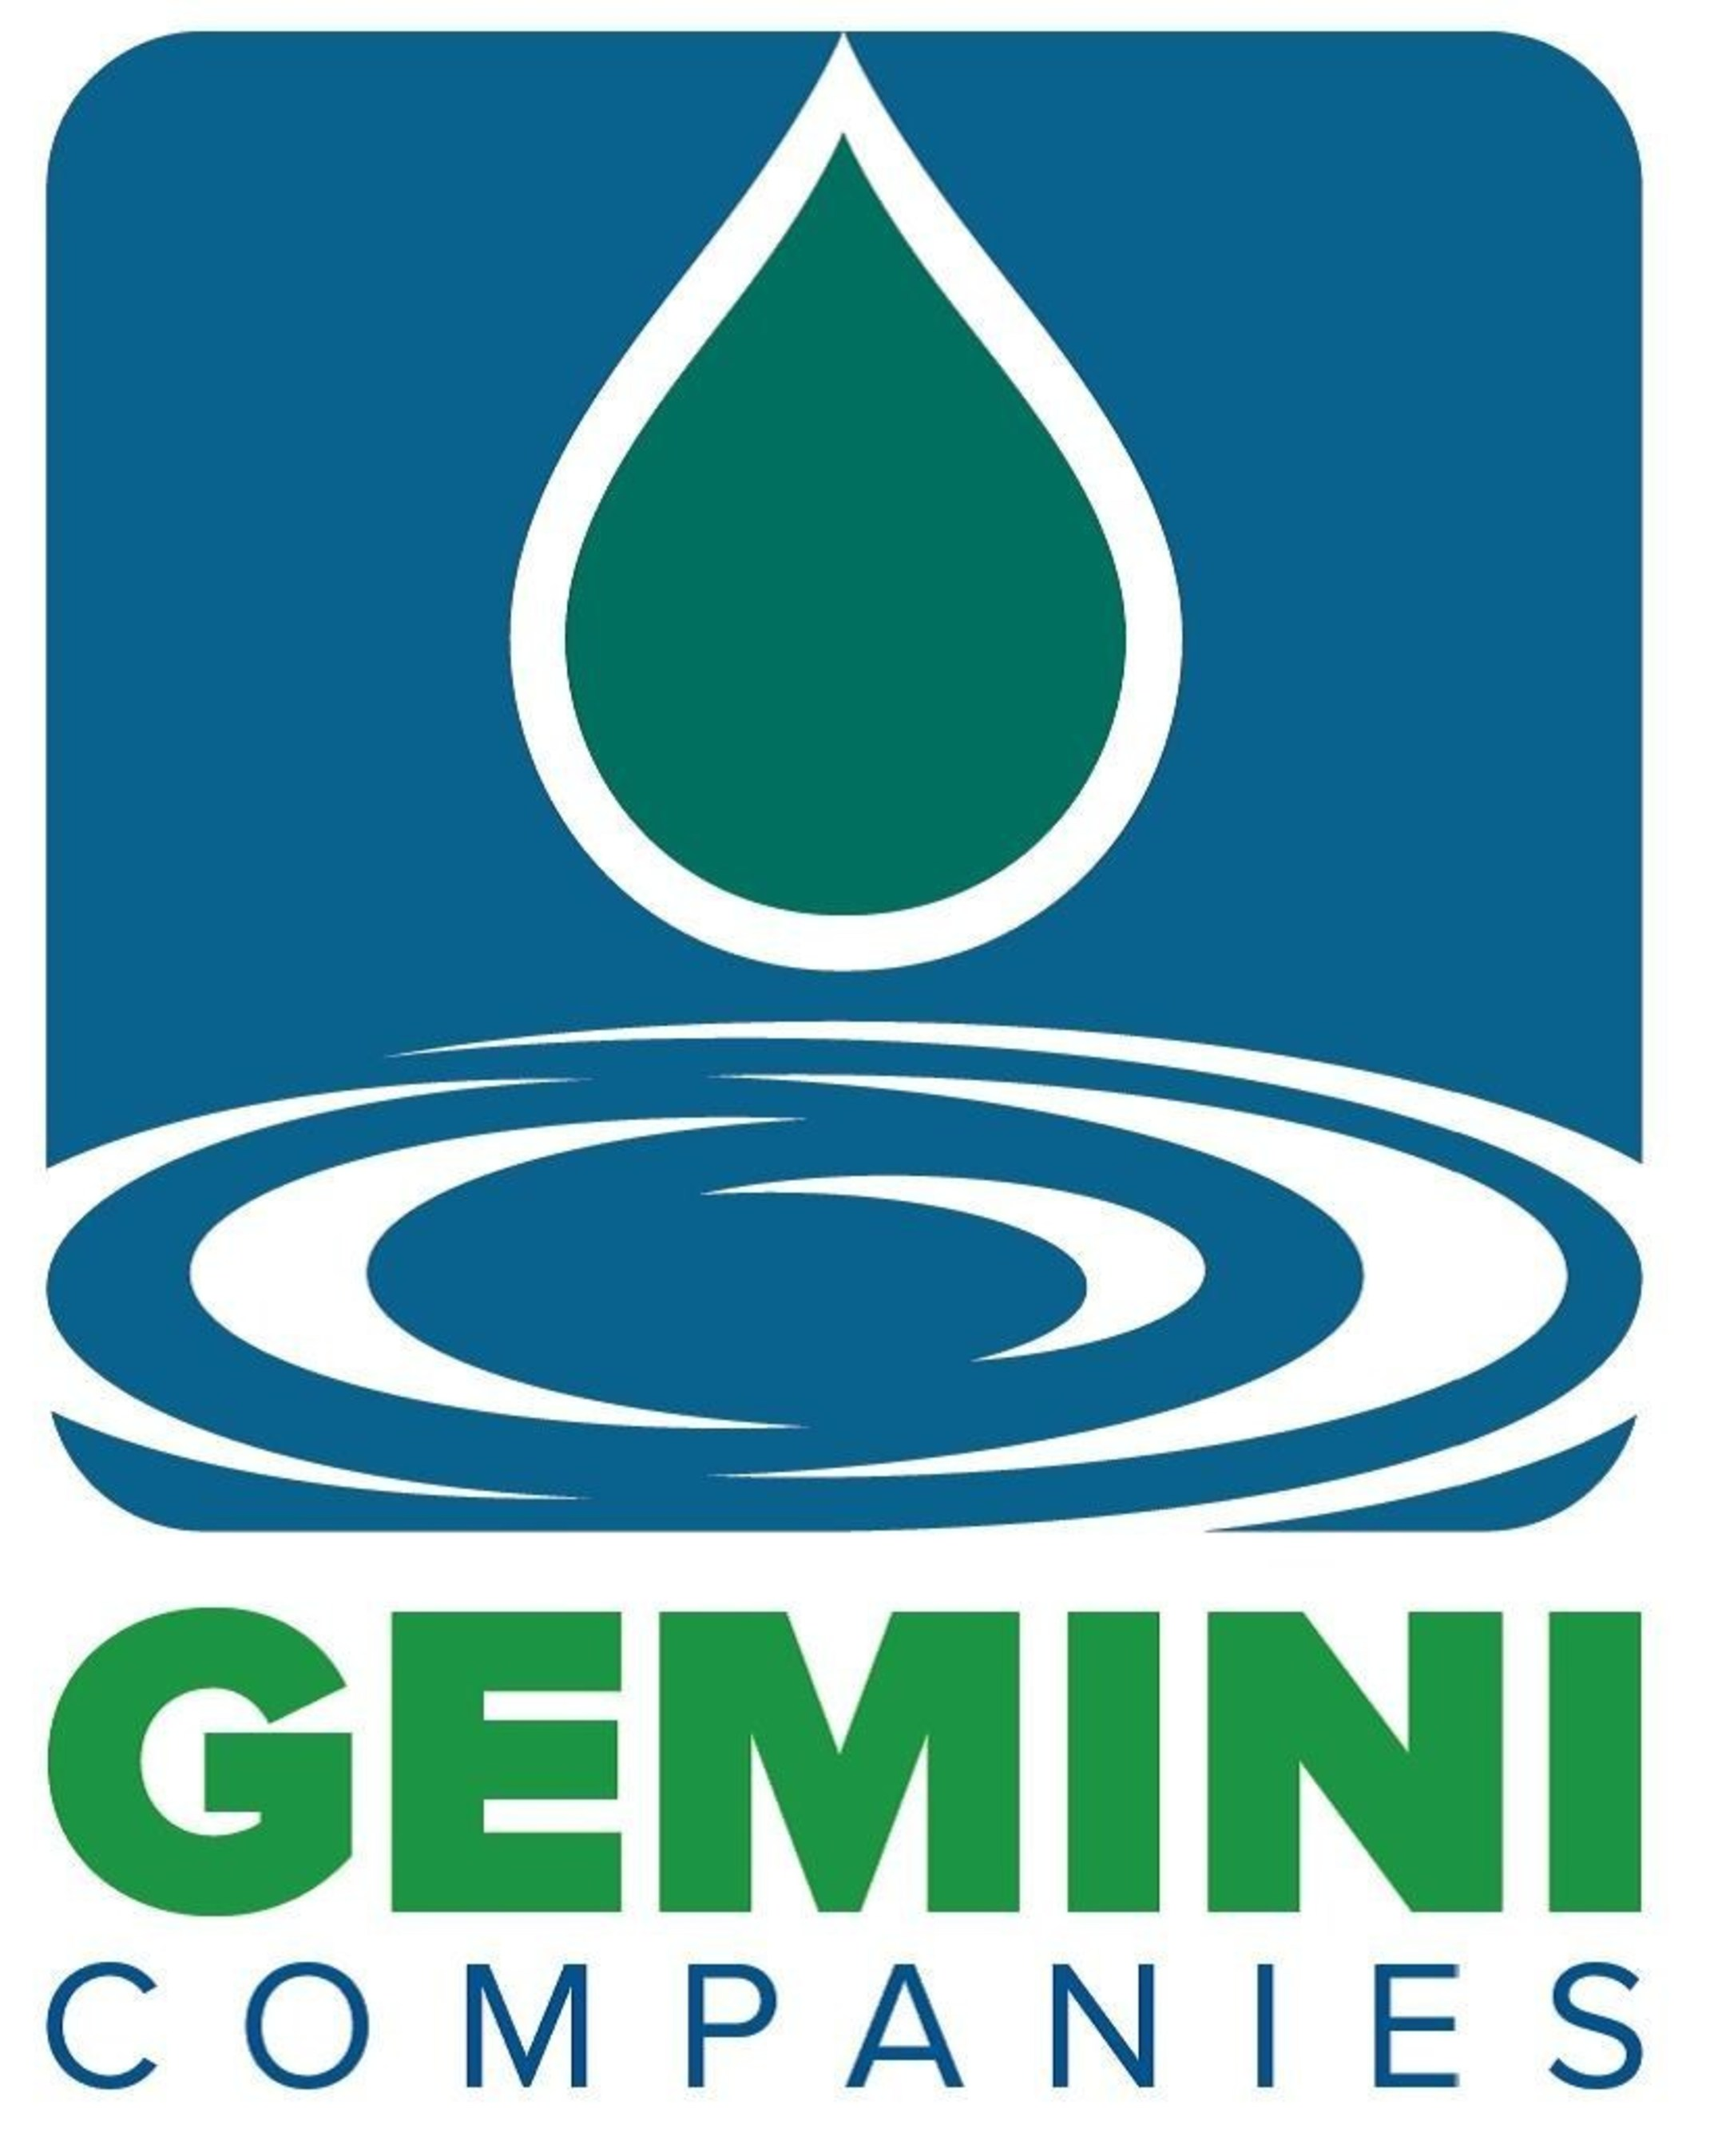 The Gemini Companies provide investment companies with a single point of access to multiple solutions for ...